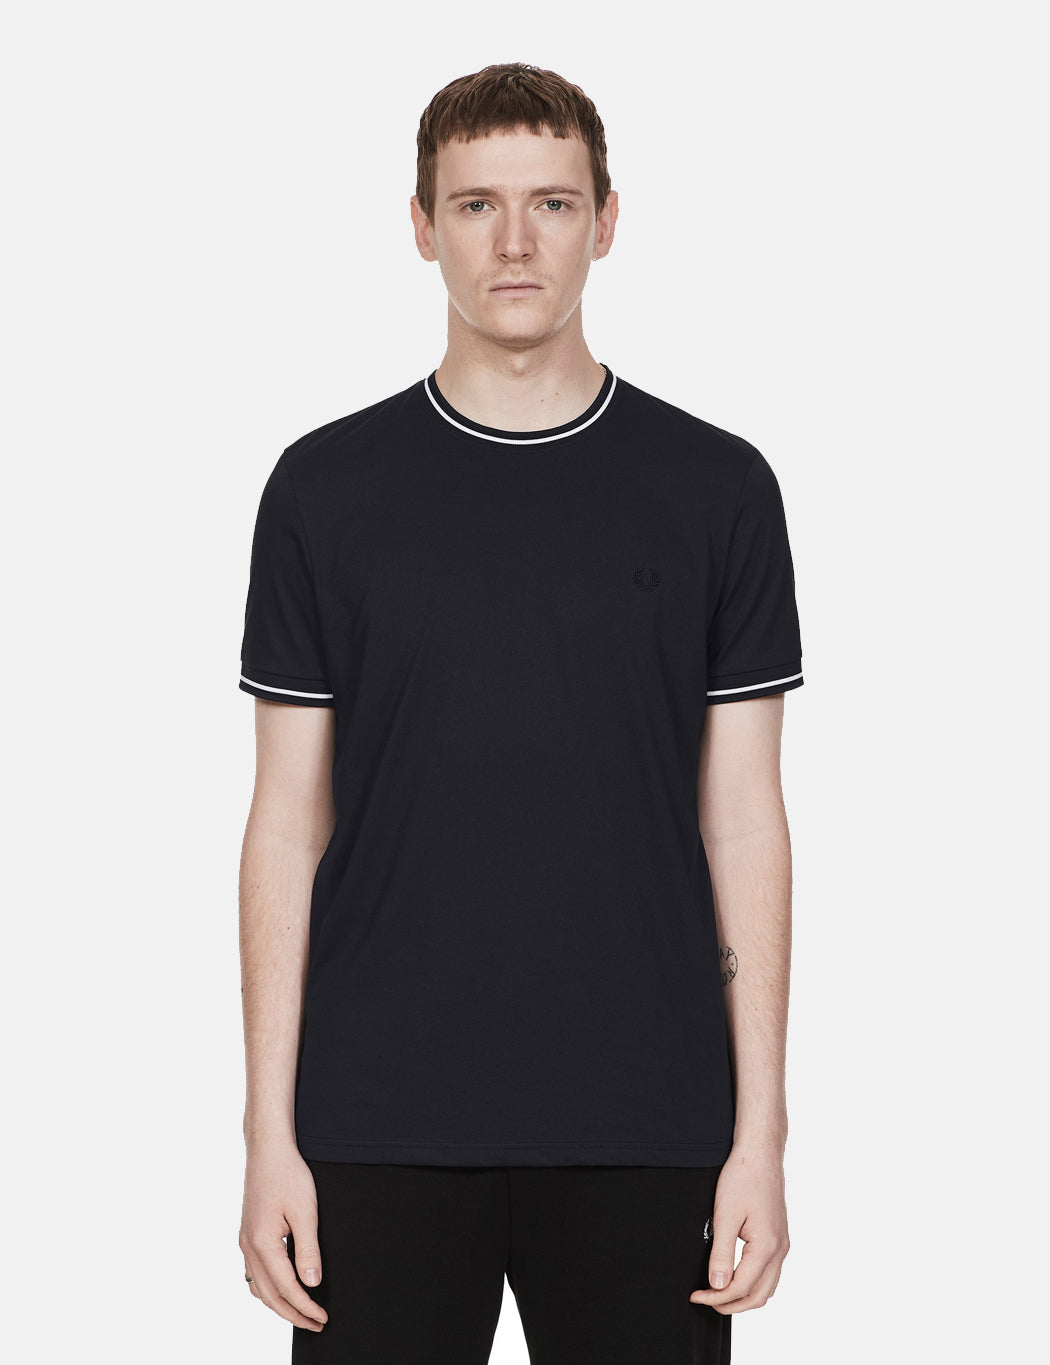 Fred Perry Twin Tipped T-Shirt - Navy Blue | URBAN EXCESS.